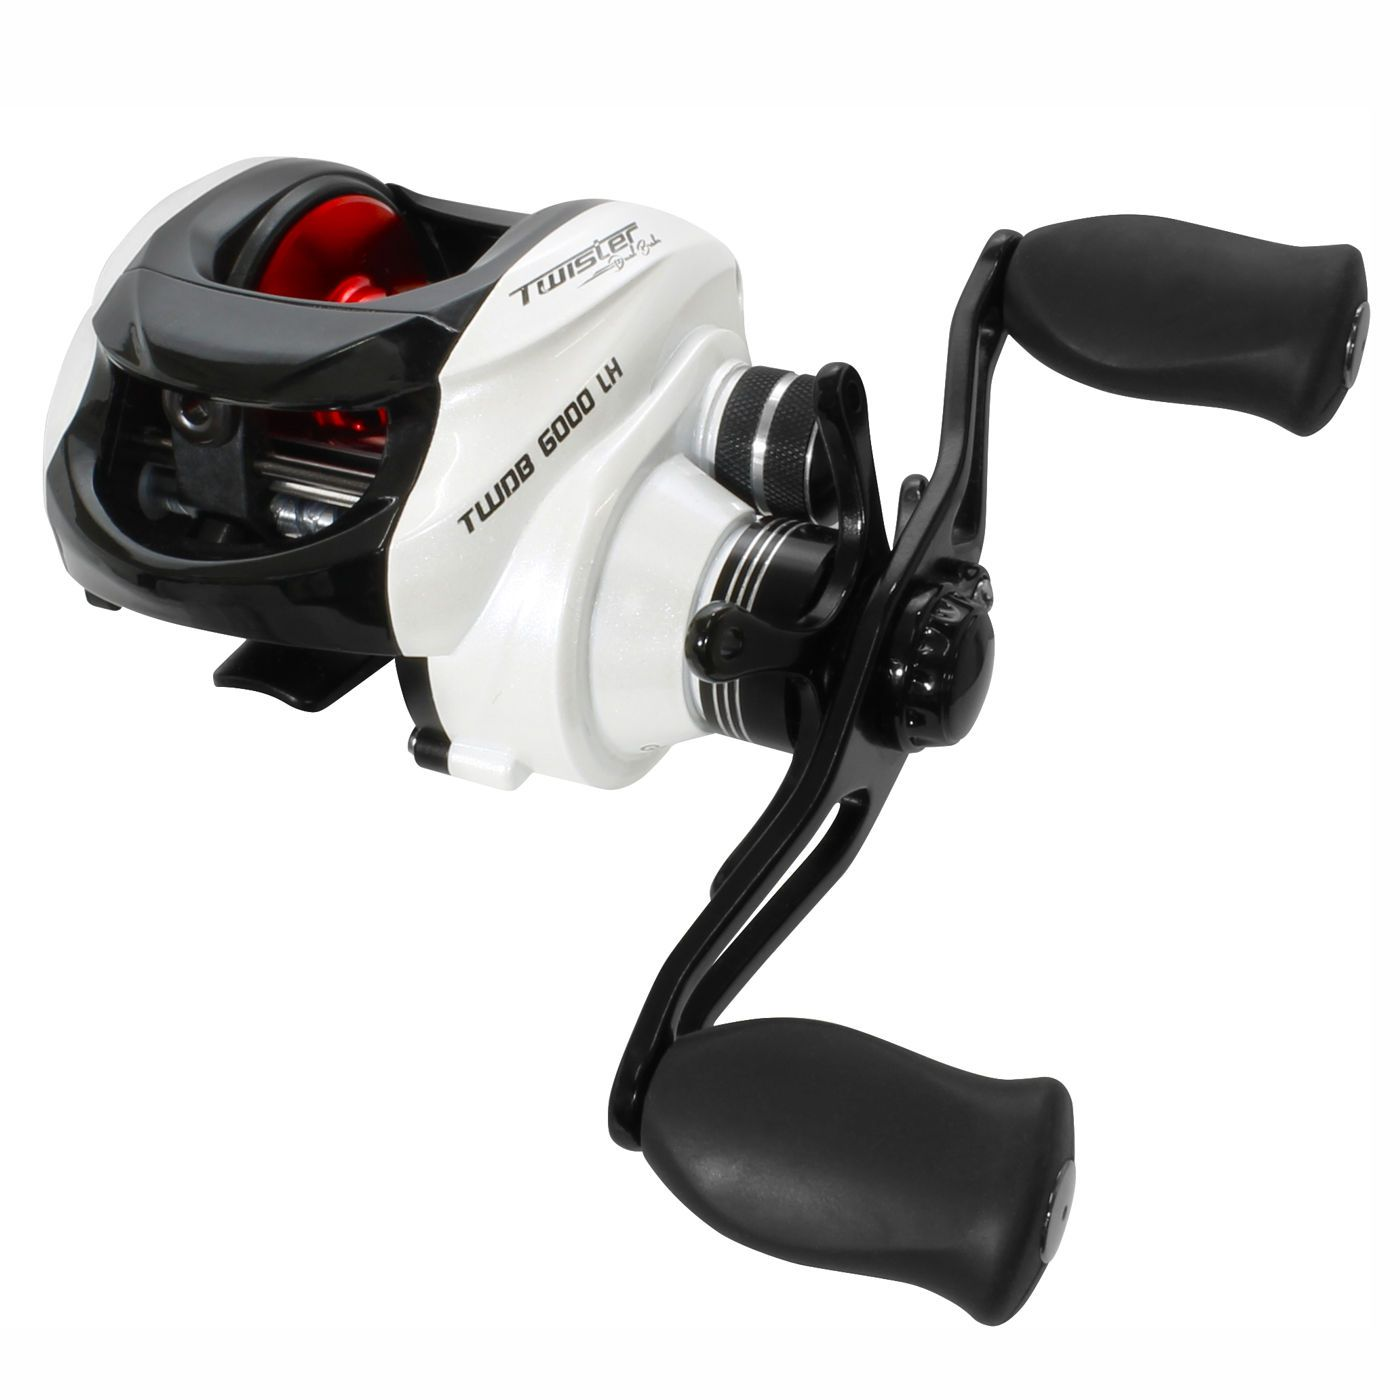 Carretilha Saint Plus Twister Dual Brake 6000LH Esquerda - 6 Rolamentos